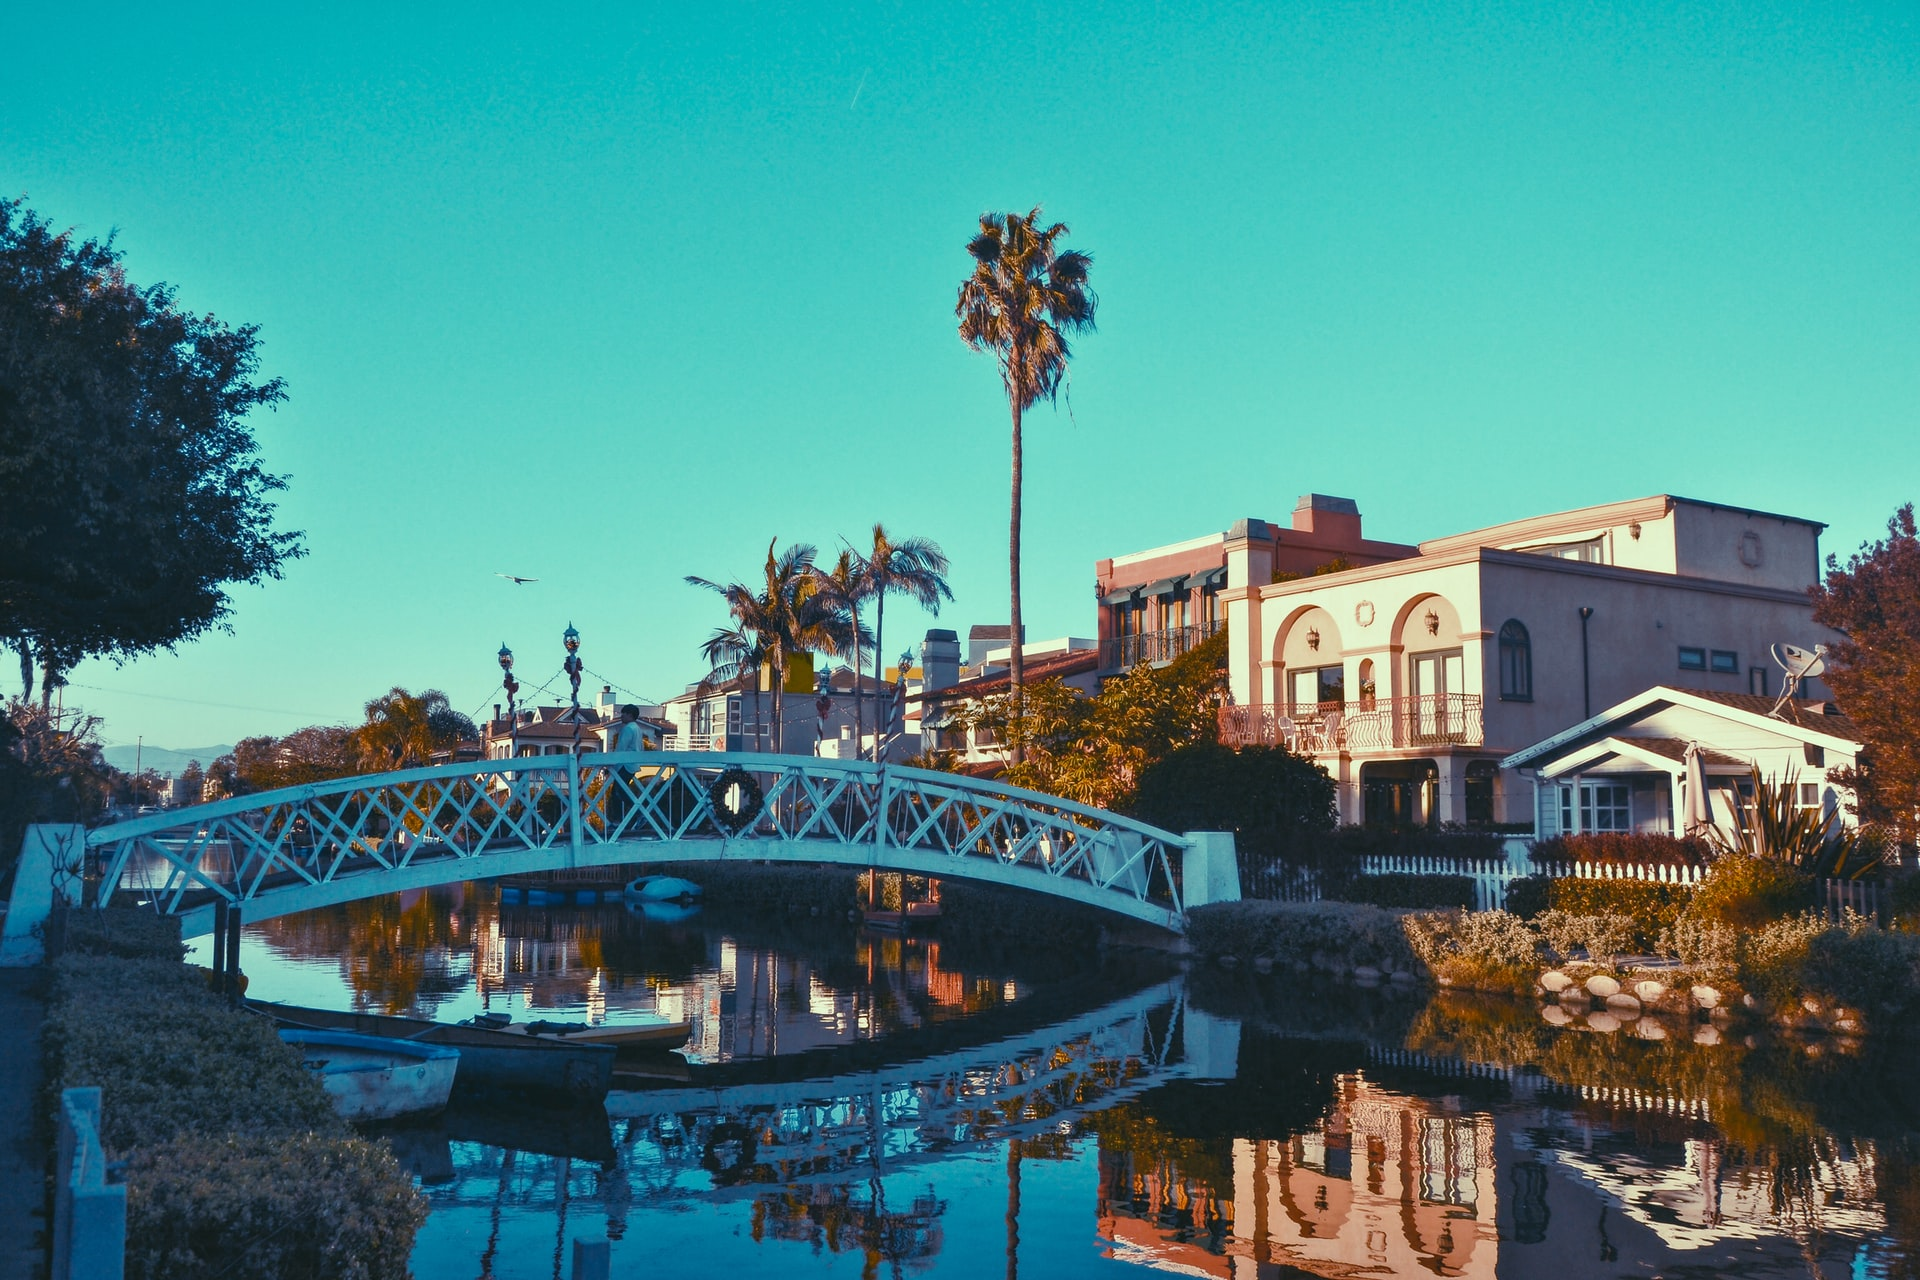 Venice beach canals with bridge over the water